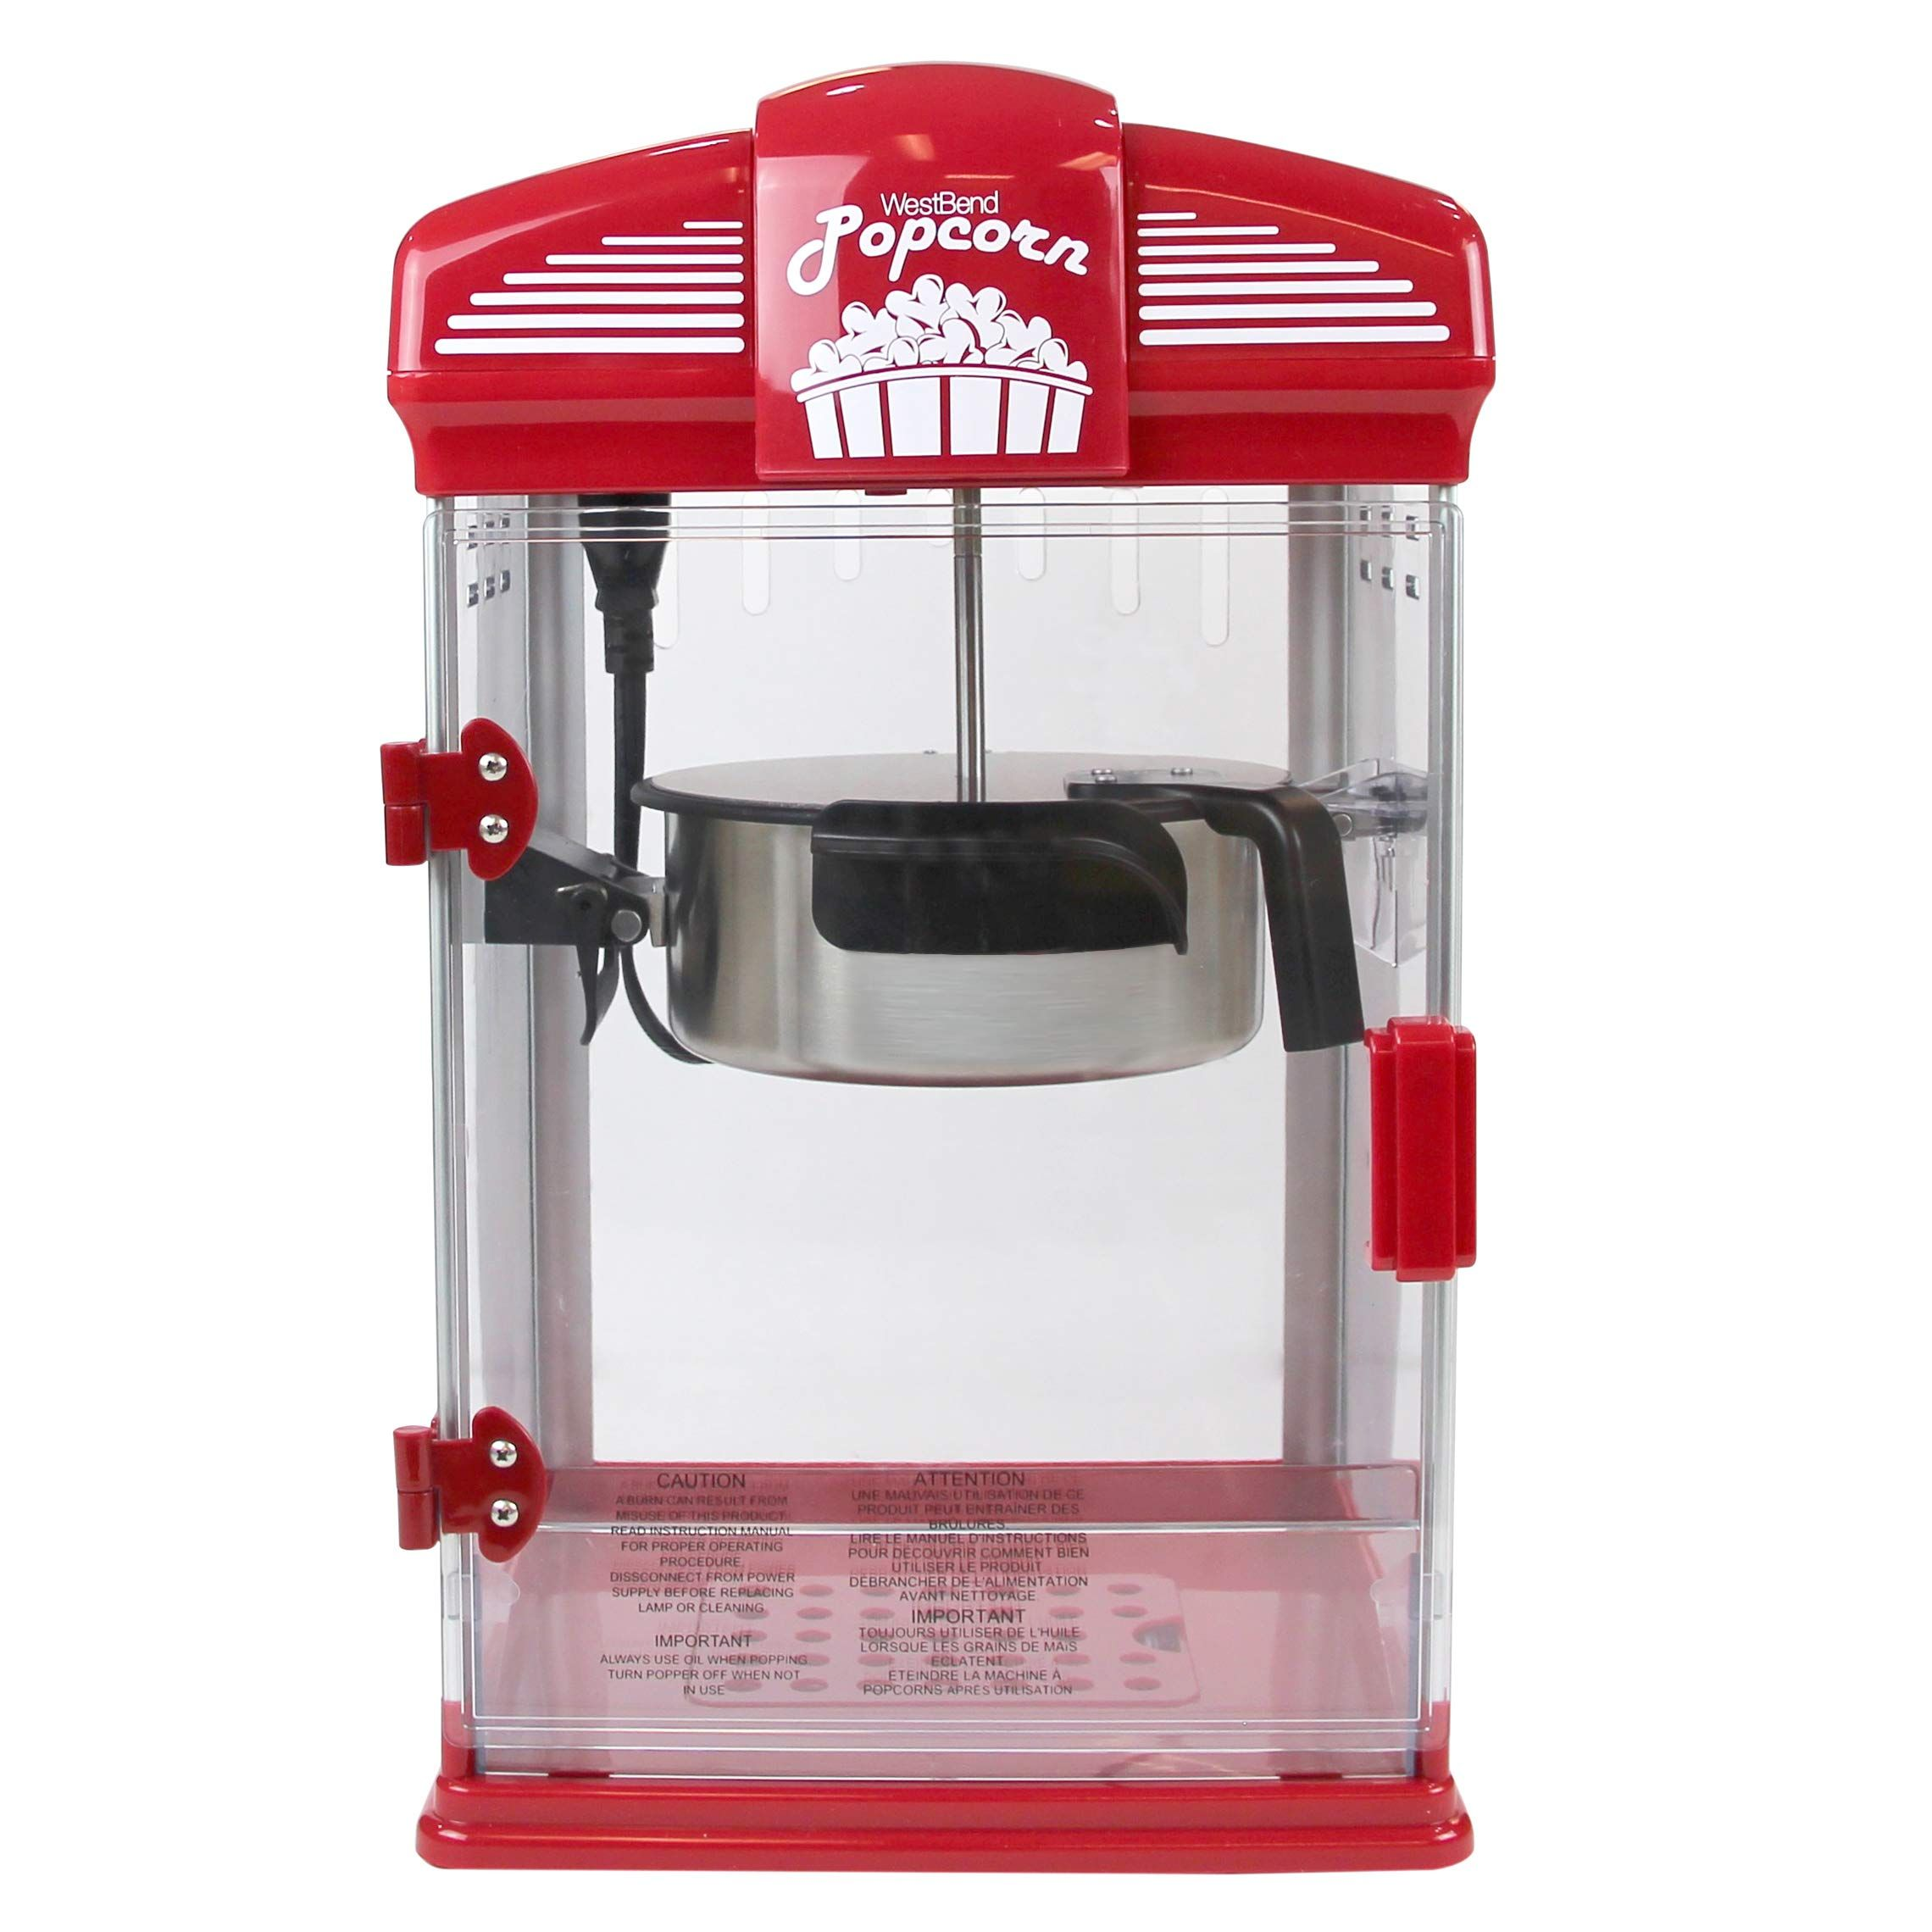 West Bend 82515 Hot Oil Theater Style Popcorn Popper Machine Offers Nonstick Kettle Fast And Durable With Easy Clean Up 4 In 2020 Popcorn Machine Popcorn Movie Theater